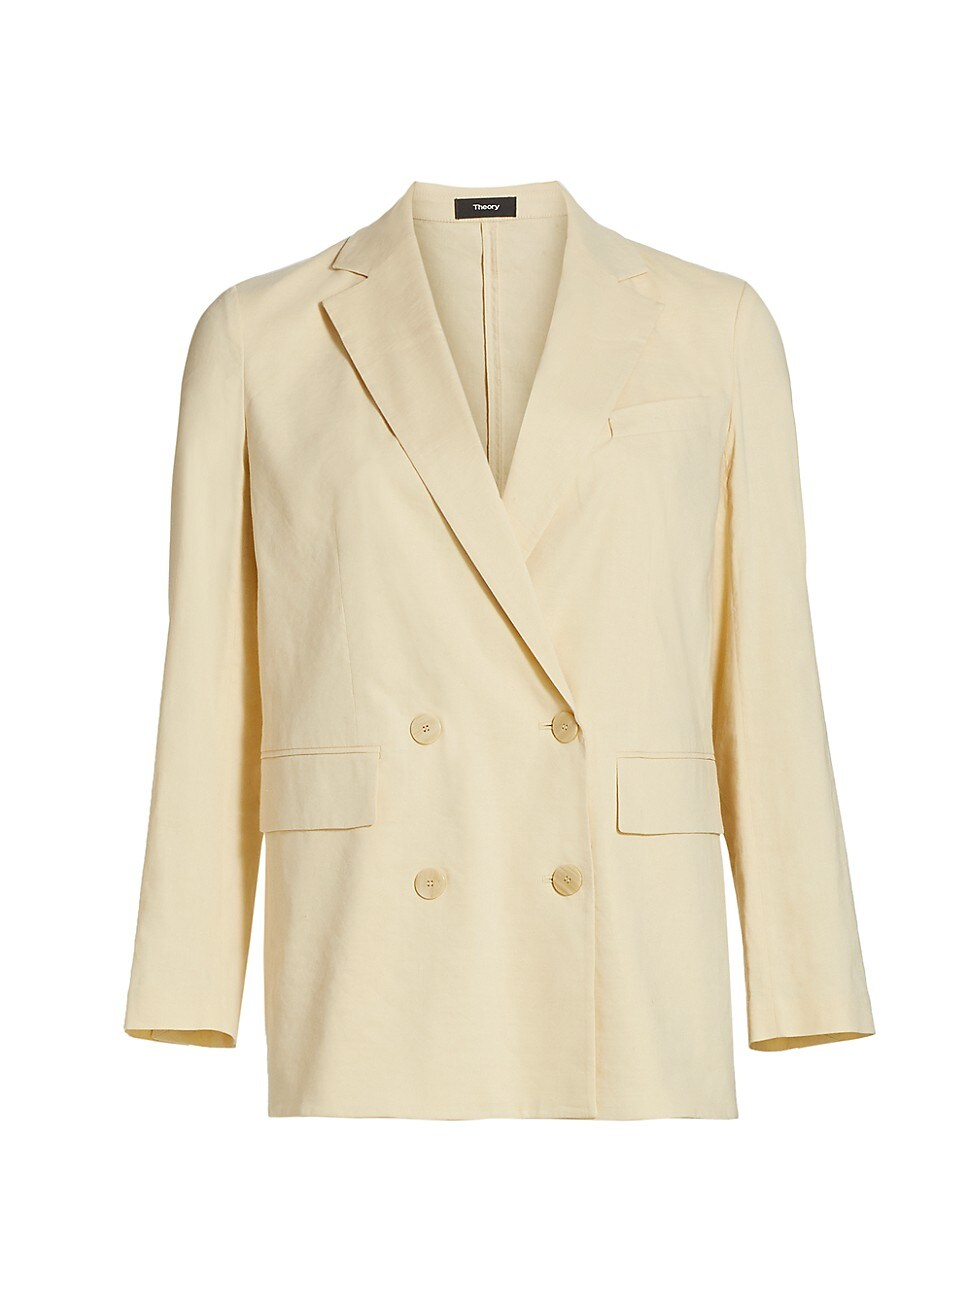 Theory Jackets WOMEN'S PIAZZA DOUBLE-BREASTED LINEN-BLEND JACKET